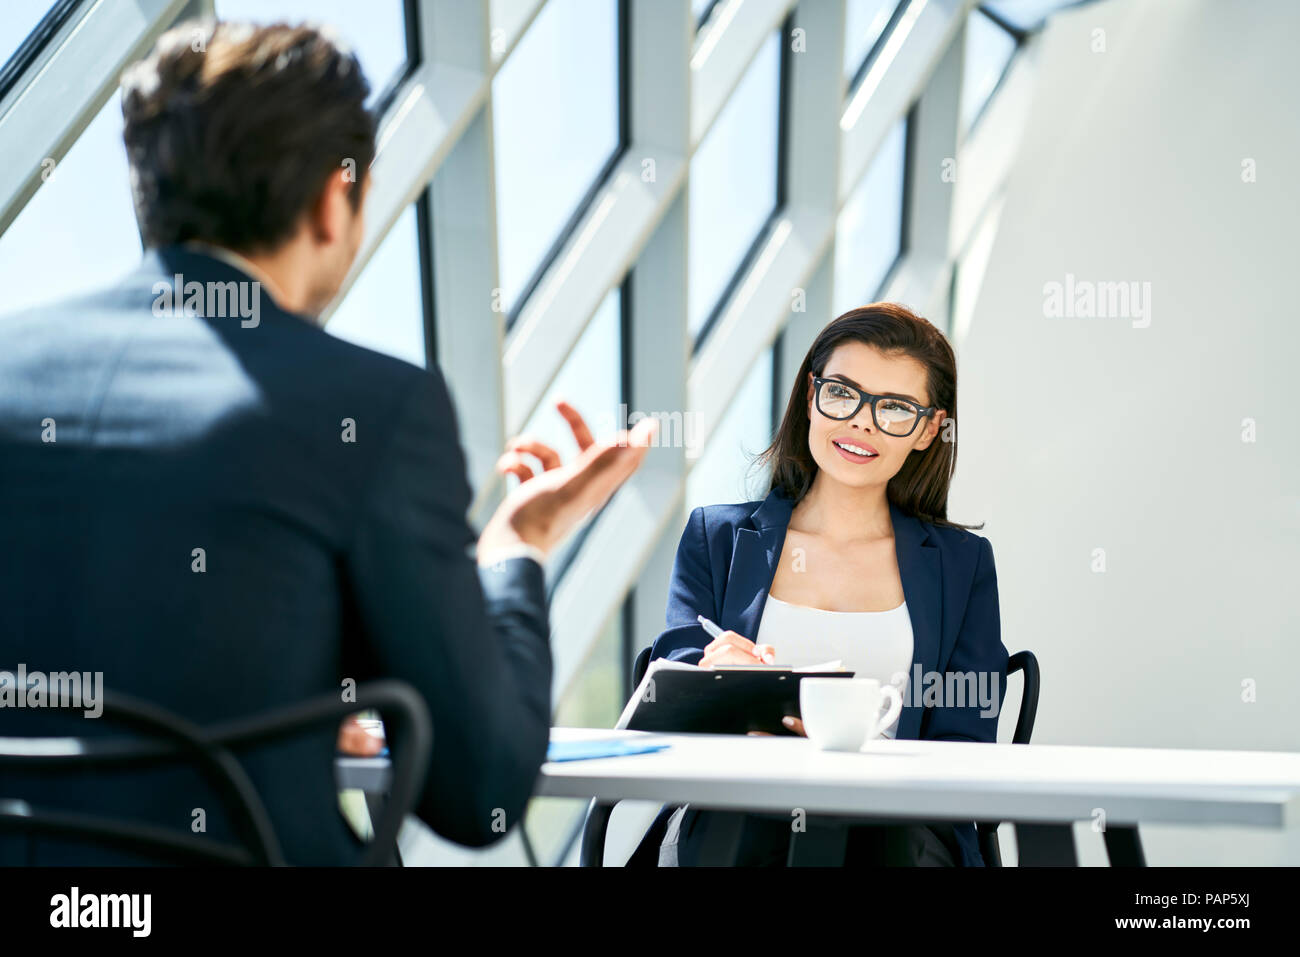 Young talking at desk in modern office Photo Stock